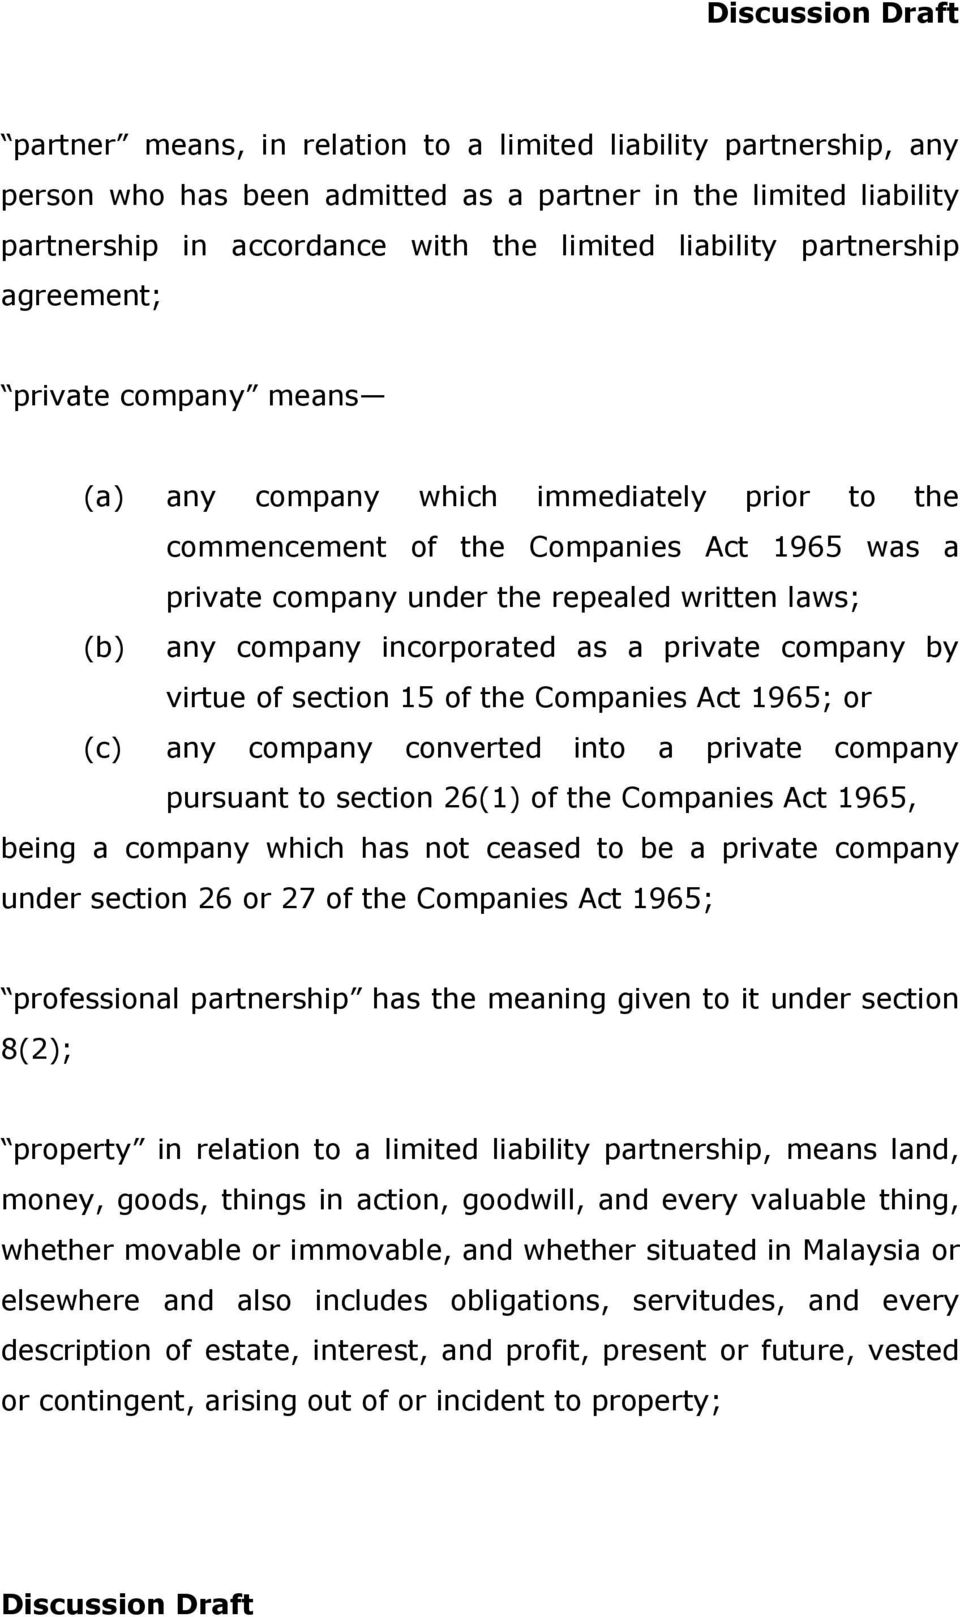 as a private company by virtue of section 15 of the Companies Act 1965; or (c) any company converted into a private company pursuant to section 26(1) of the Companies Act 1965, being a company which